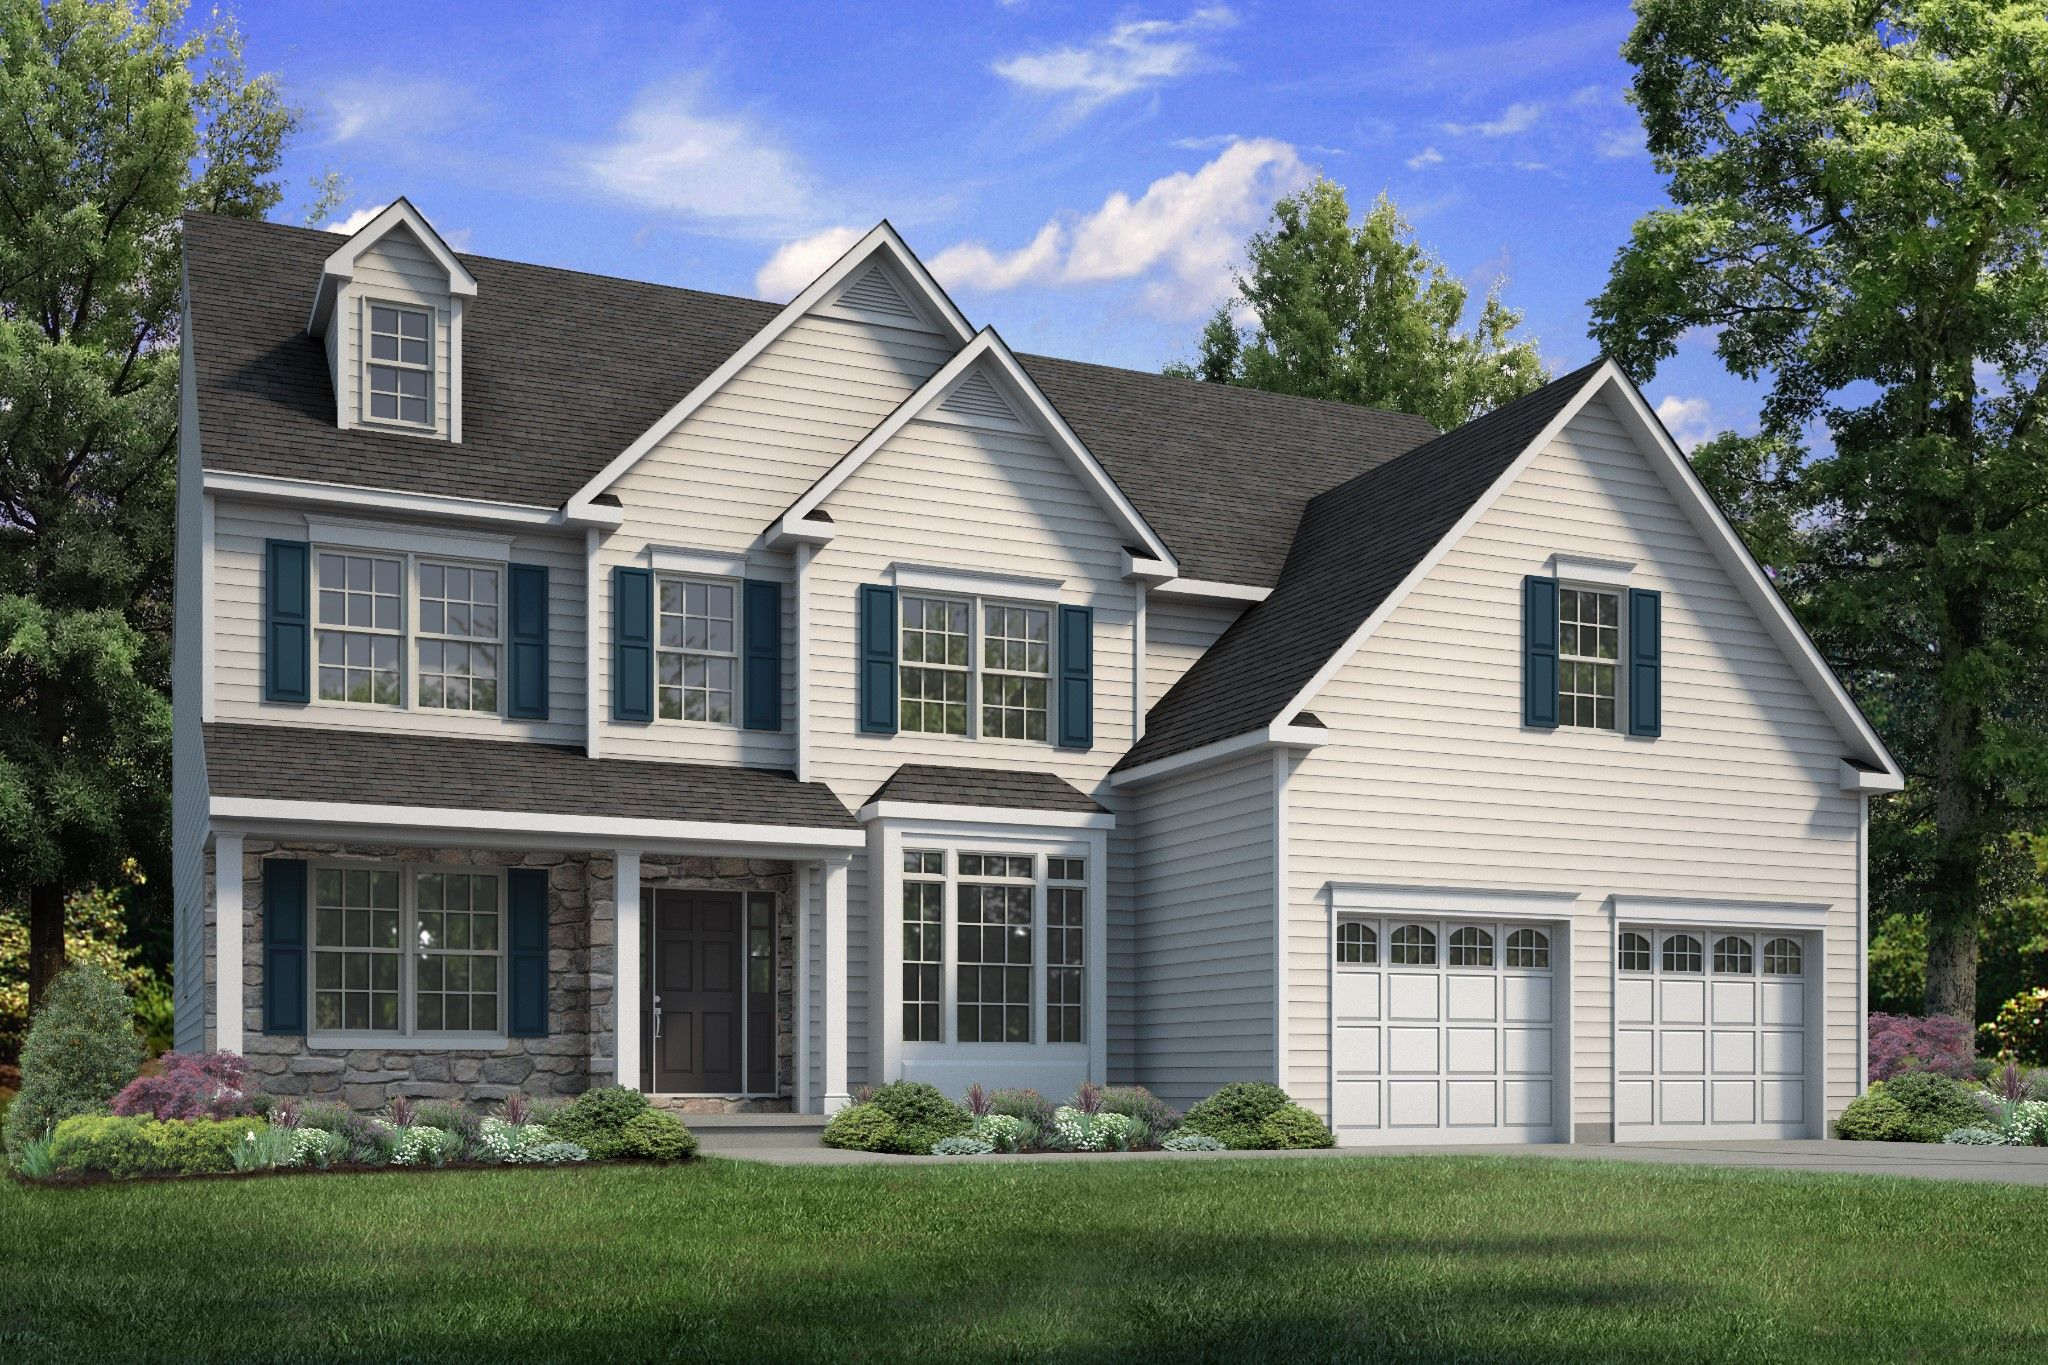 Exterior featured in the Breckenridge Grande Traditional By Tuskes Homes - Infill